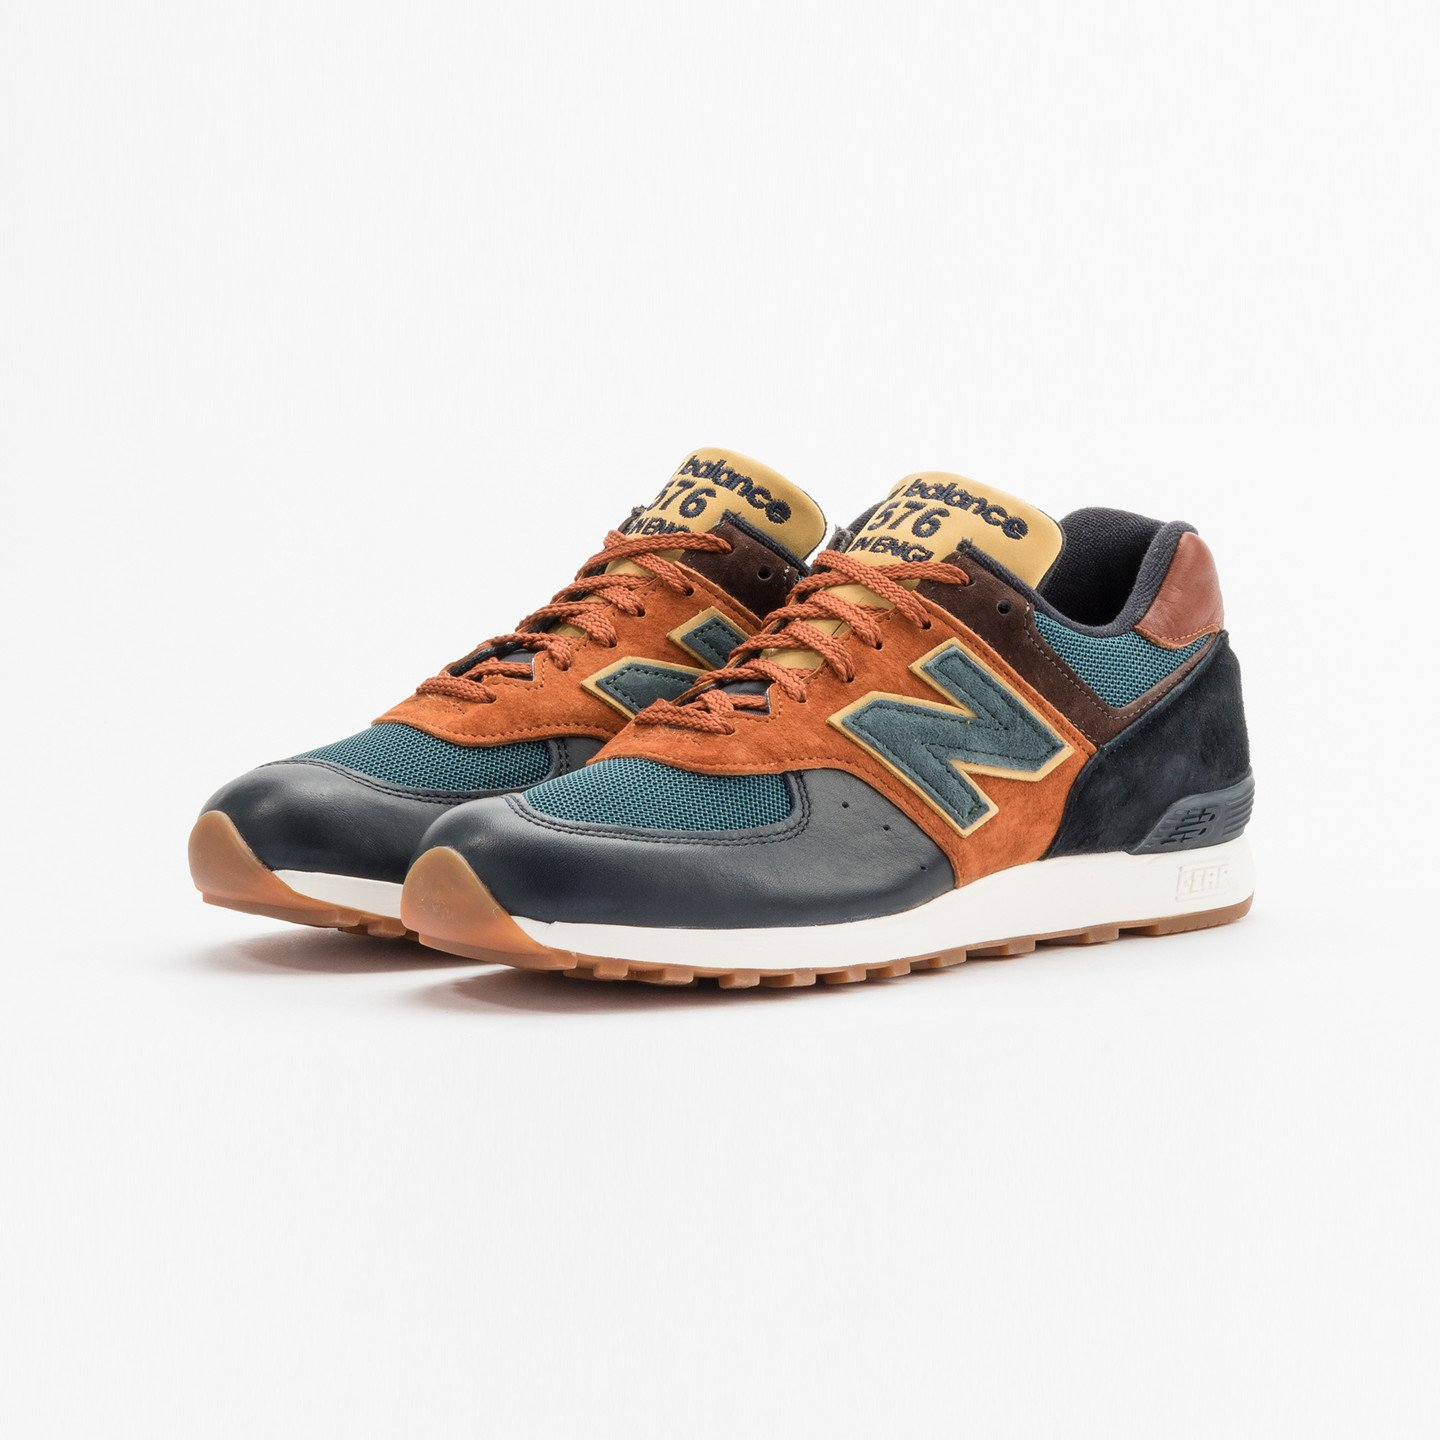 New Balance M576 YP Made in UK 'Yard Pack' Multicolor M576YP